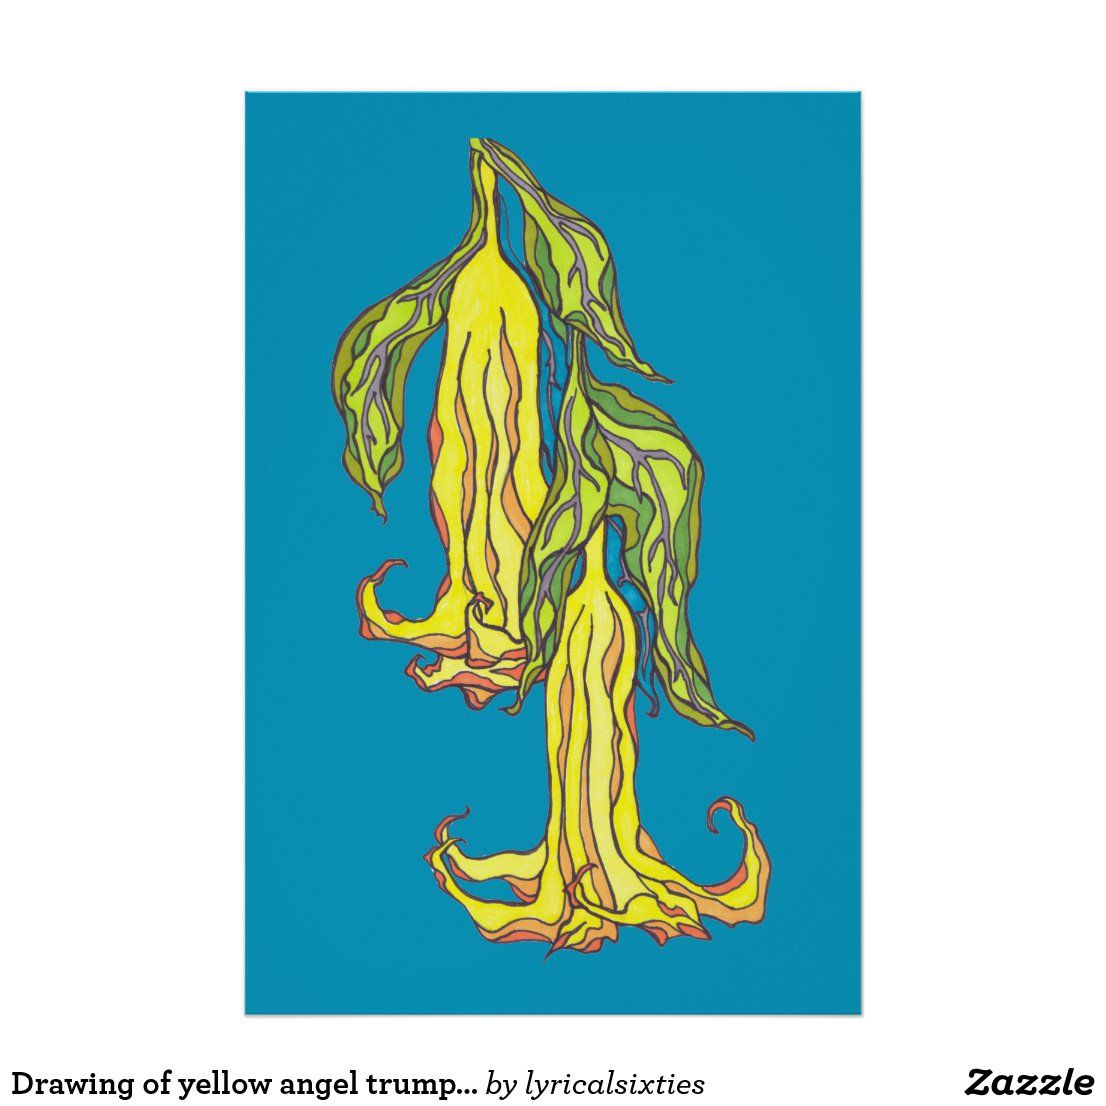 Drawing of yellow angel trumpet flowers, teal blue poster